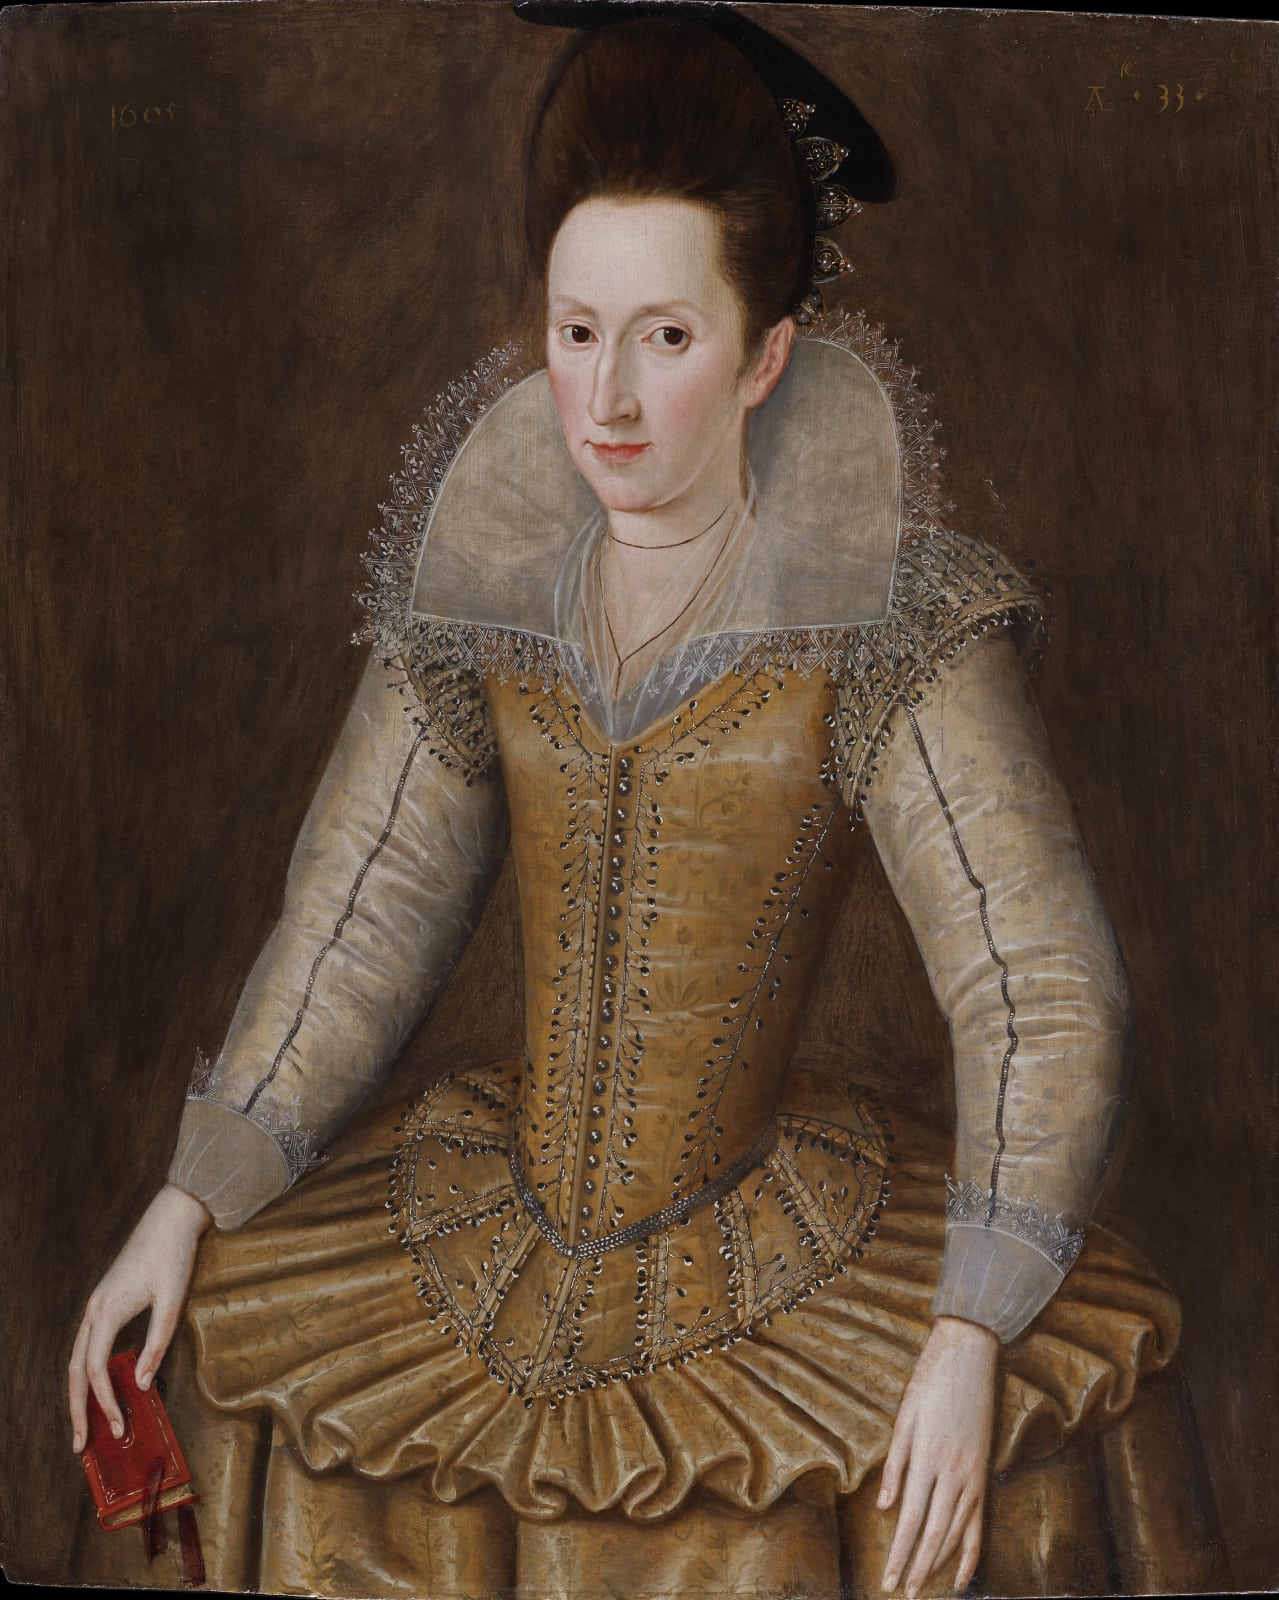 Mary Senhouse (b.1572)